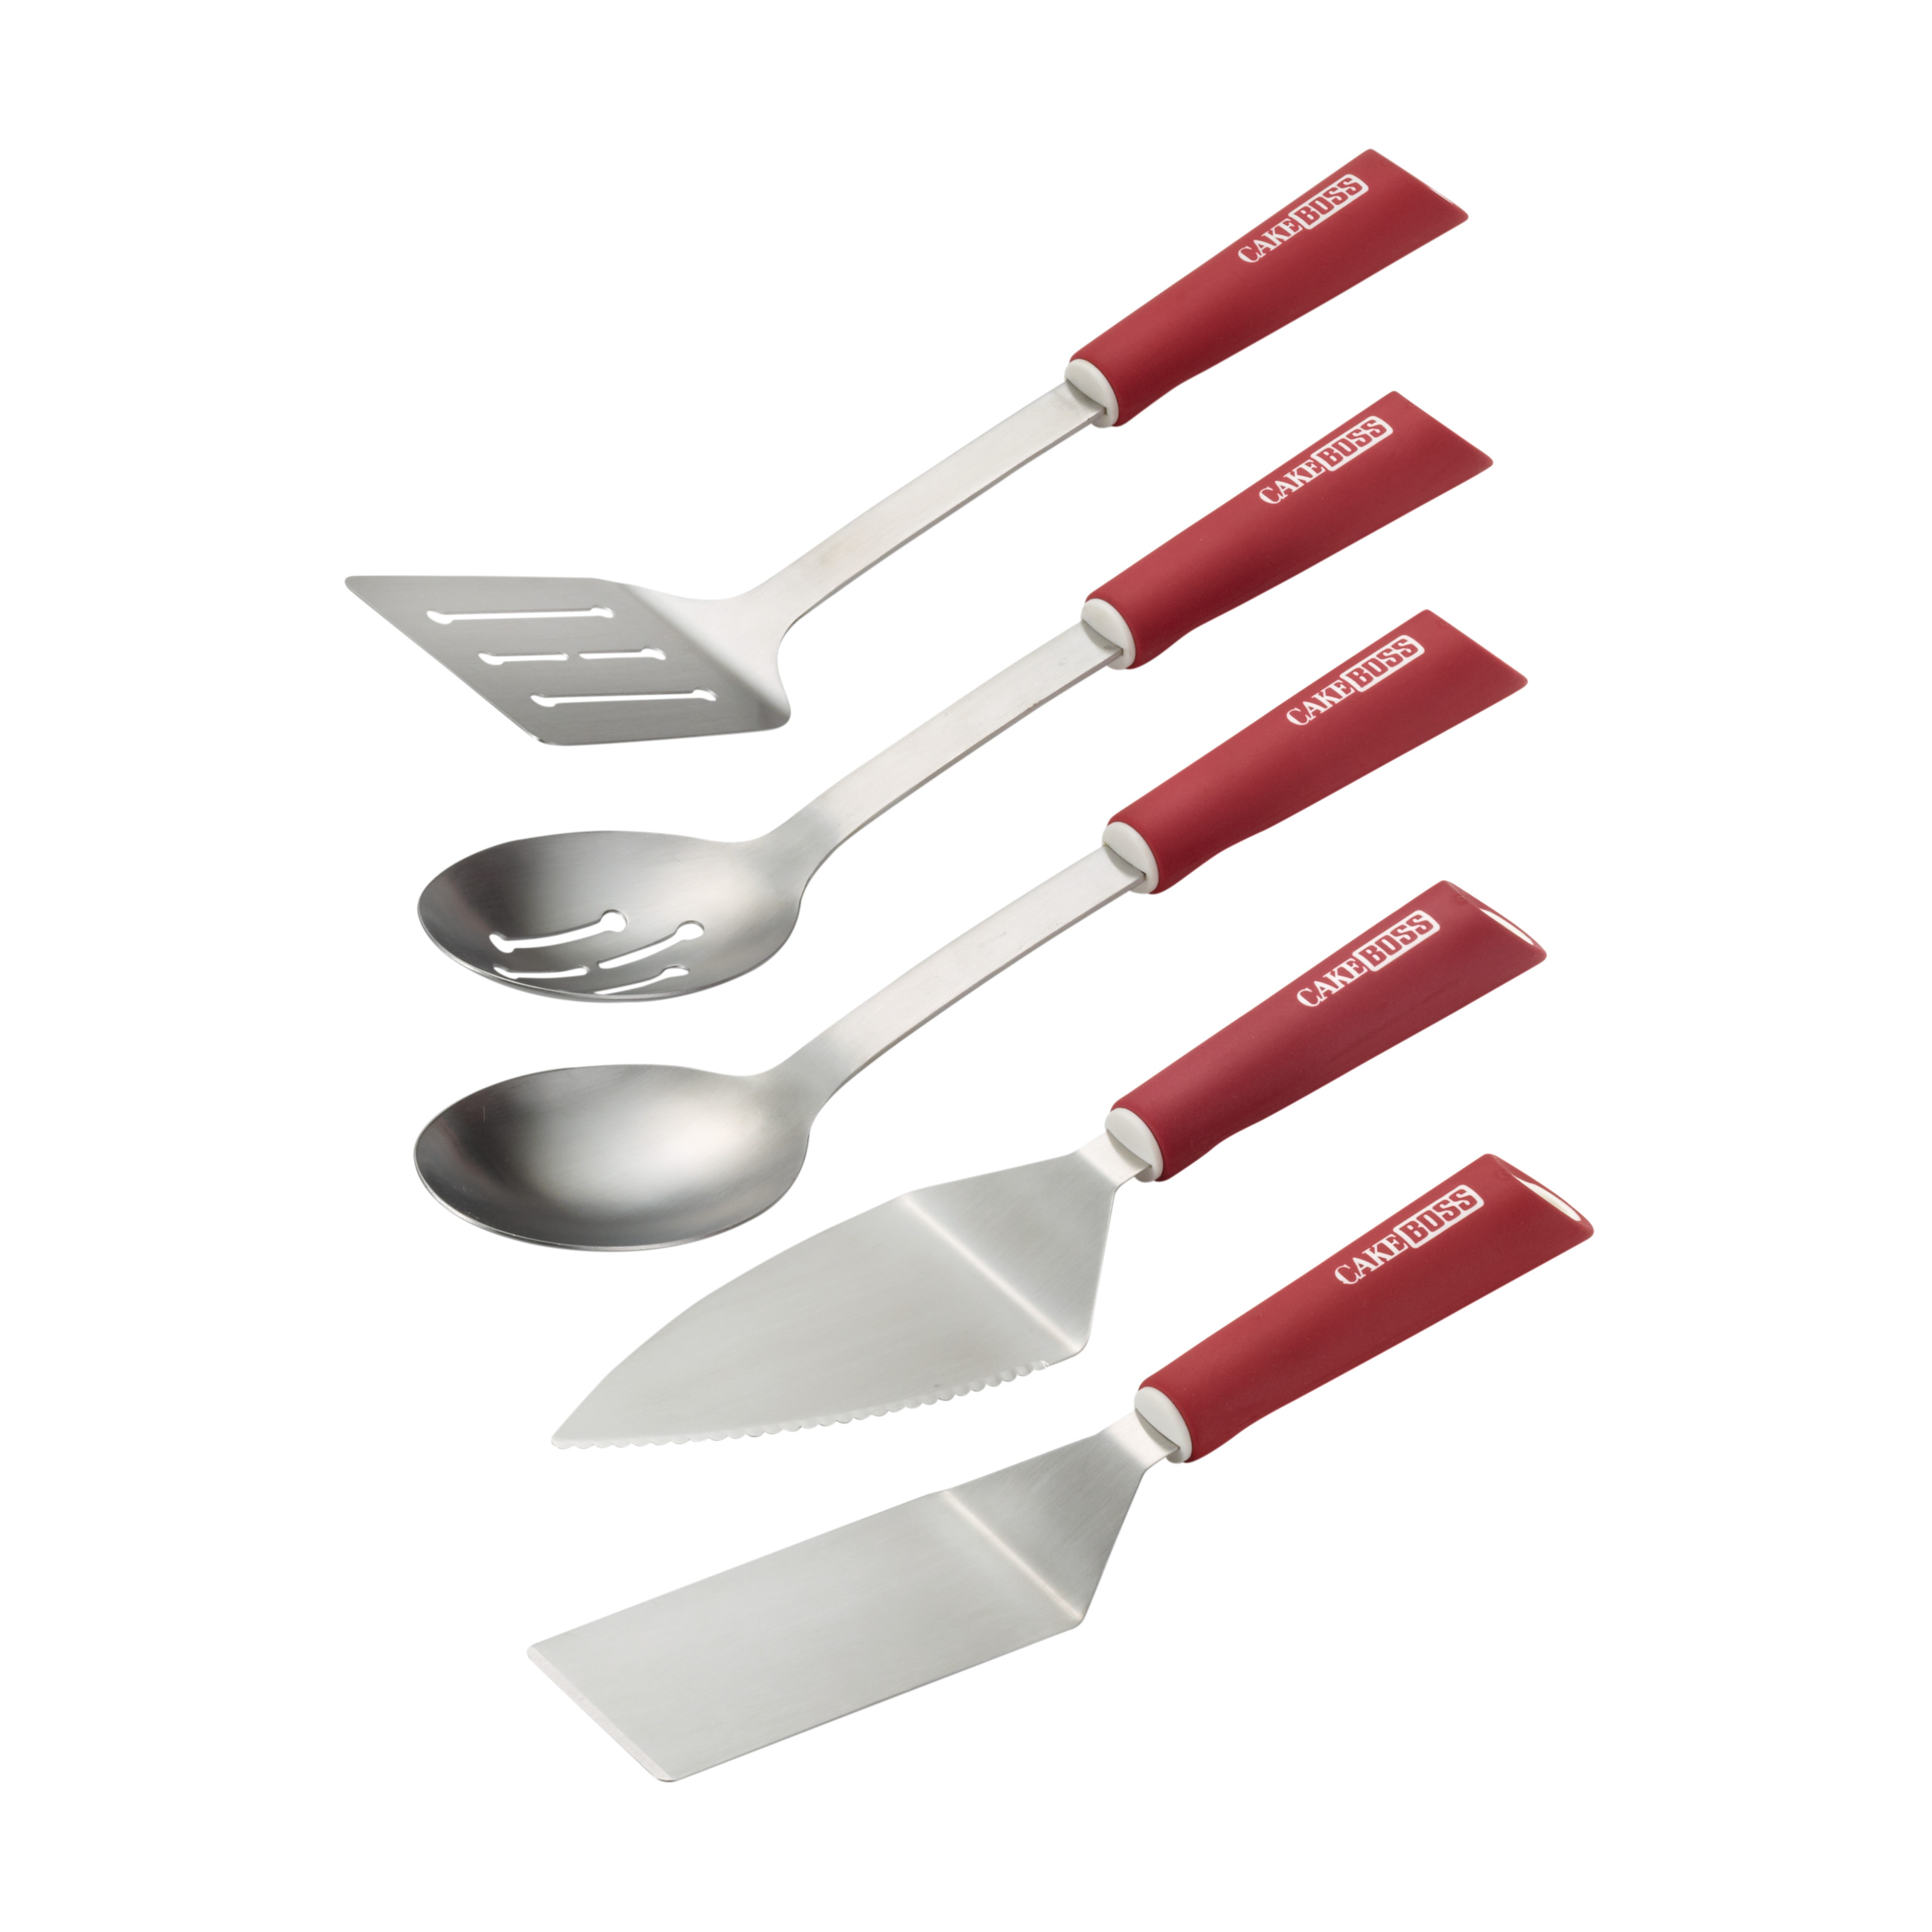 Cake Boss Stainless Steel Tools and Gadgets 5-Piece Kitchen Prep Tool Set, Red